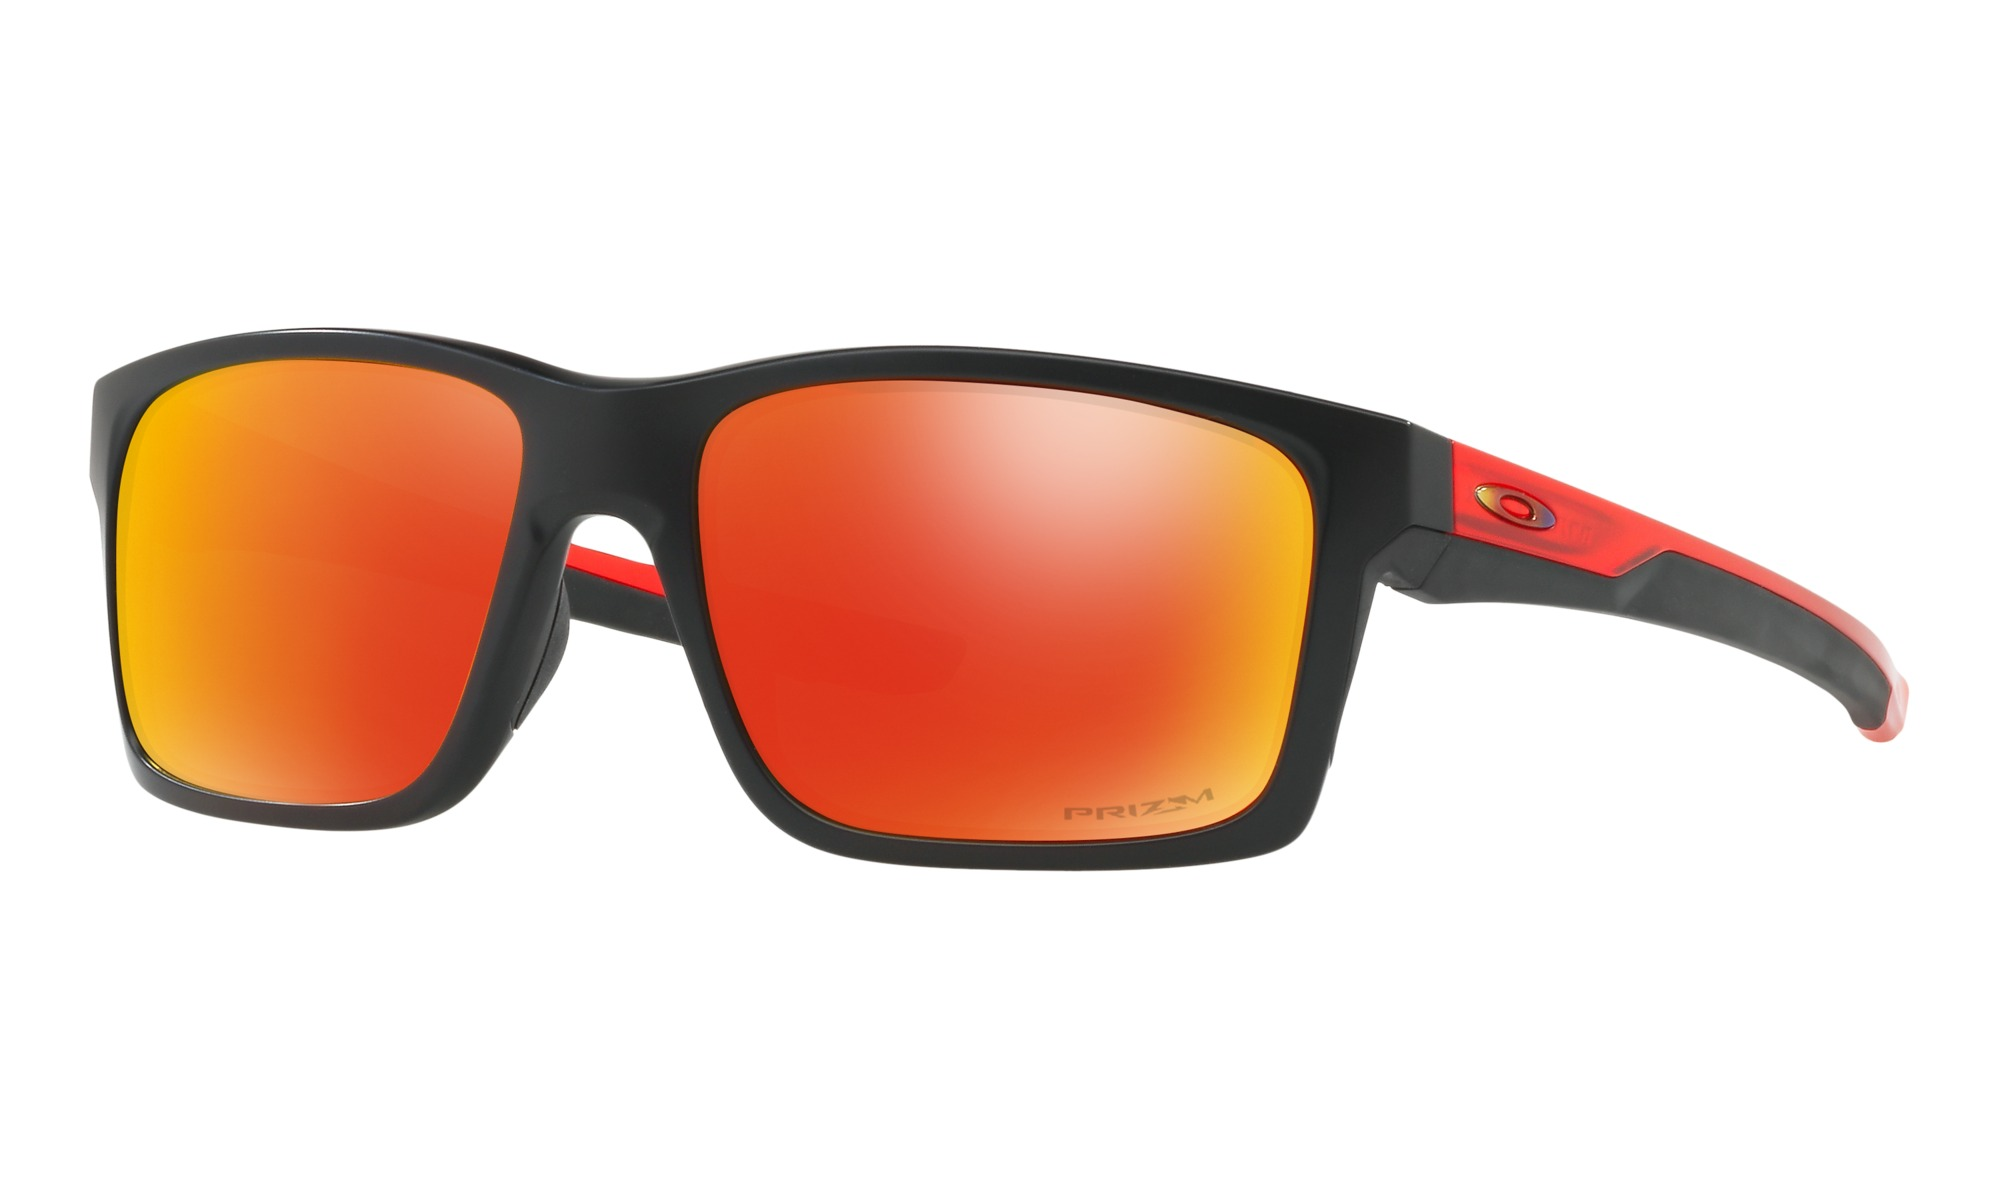 MAINLINK™ PRIZM™ RUBY FADE COLLECTION - The innovation behind a comfortably secure fit, Unobtainium® is integrated into the classic styling of this O Matter™ frame inspired by Oakley Crosslink™.